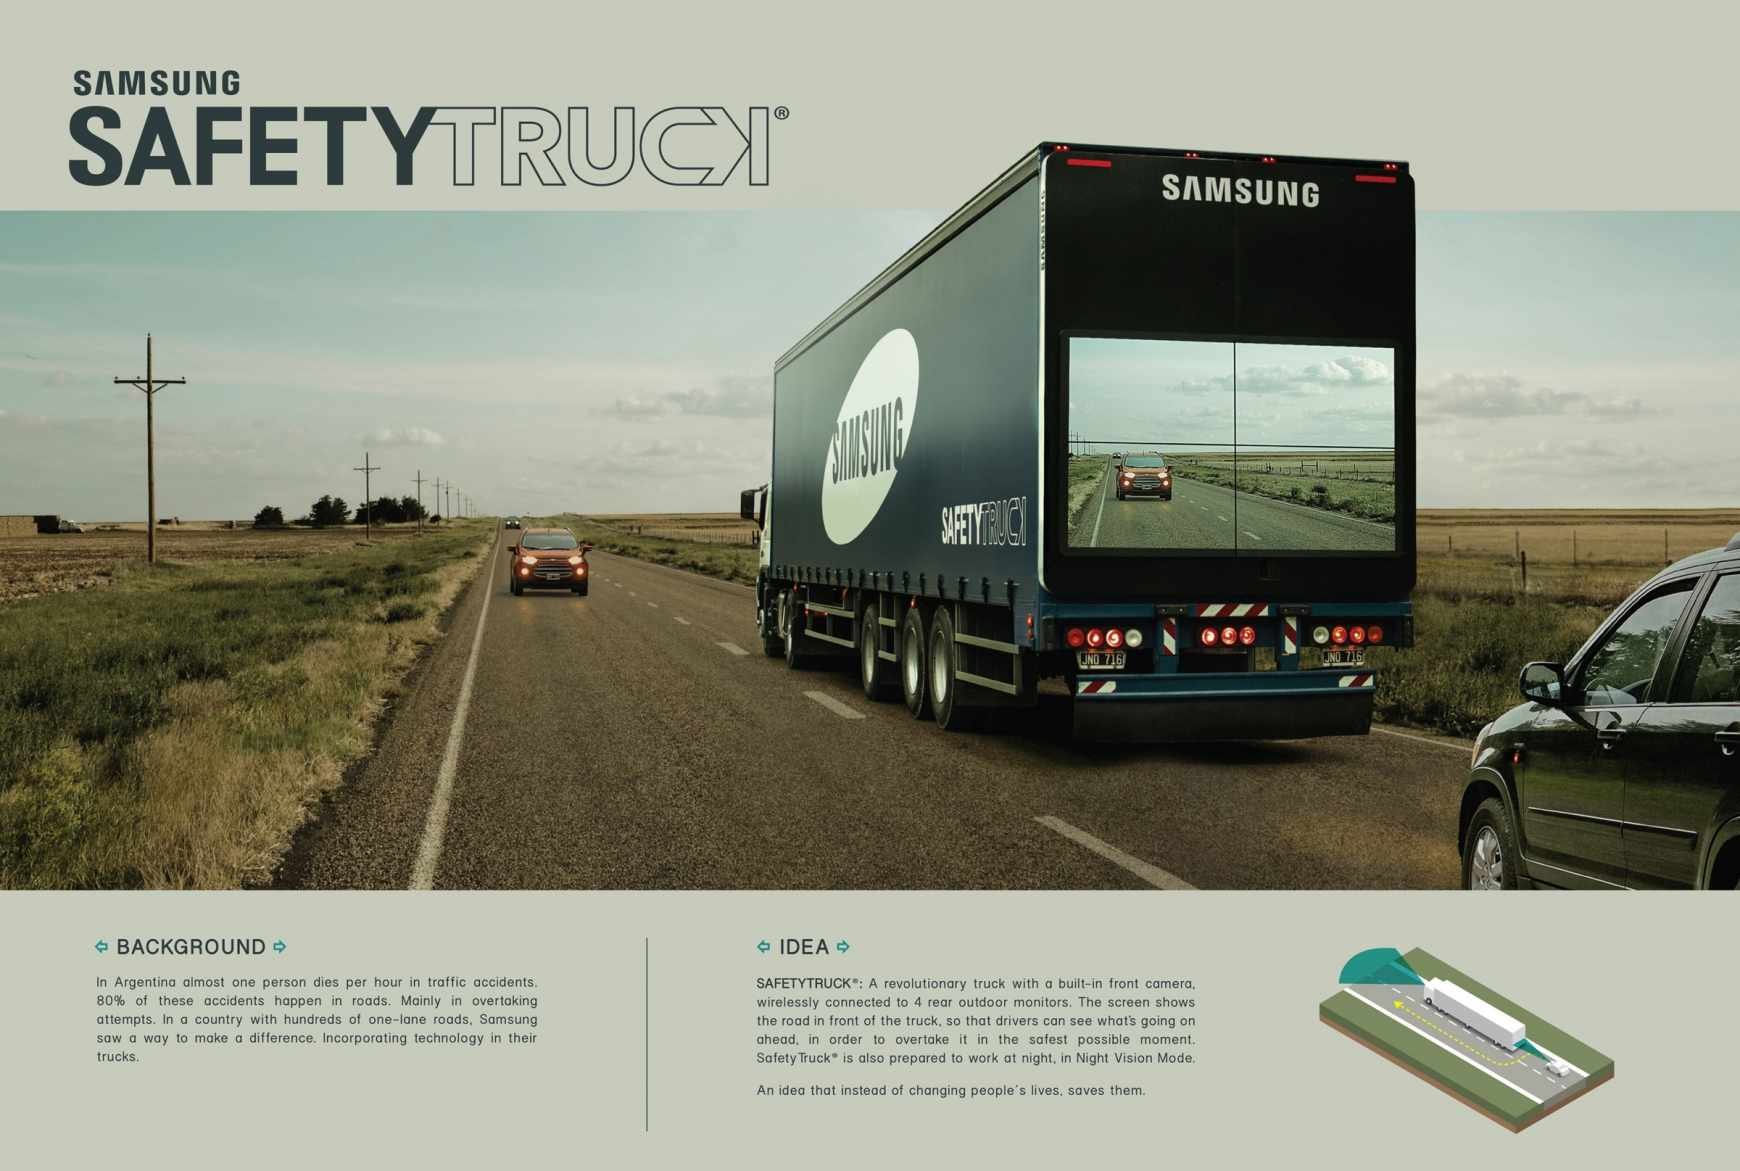 samsung_safety_truck